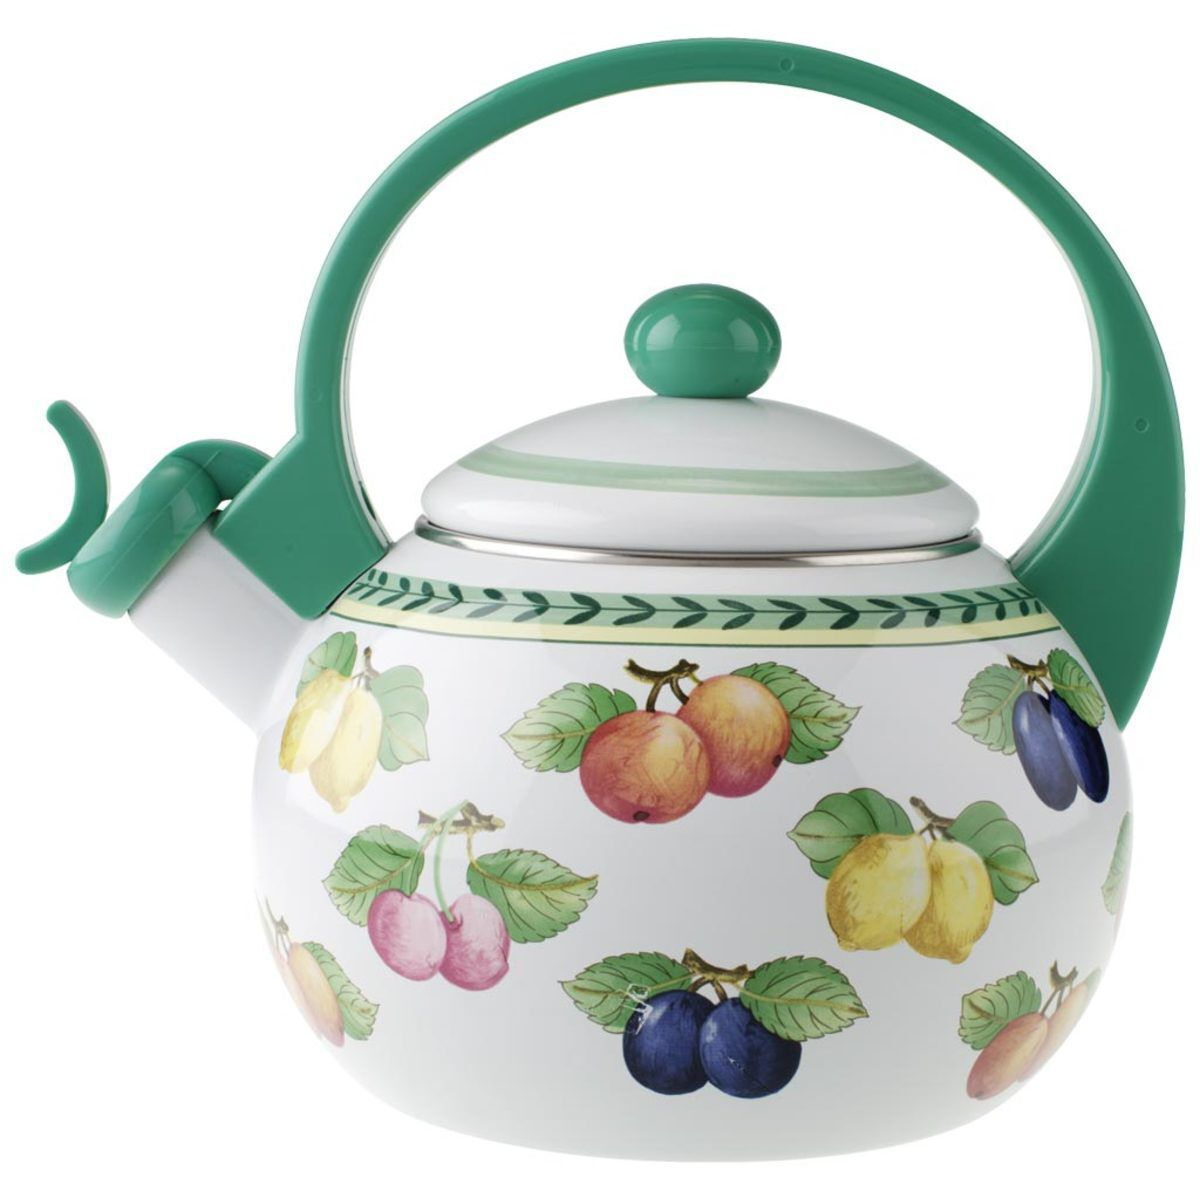 Villeroy & Boch French Garden Kitchen Teekessel | Karstadt Online-Shop